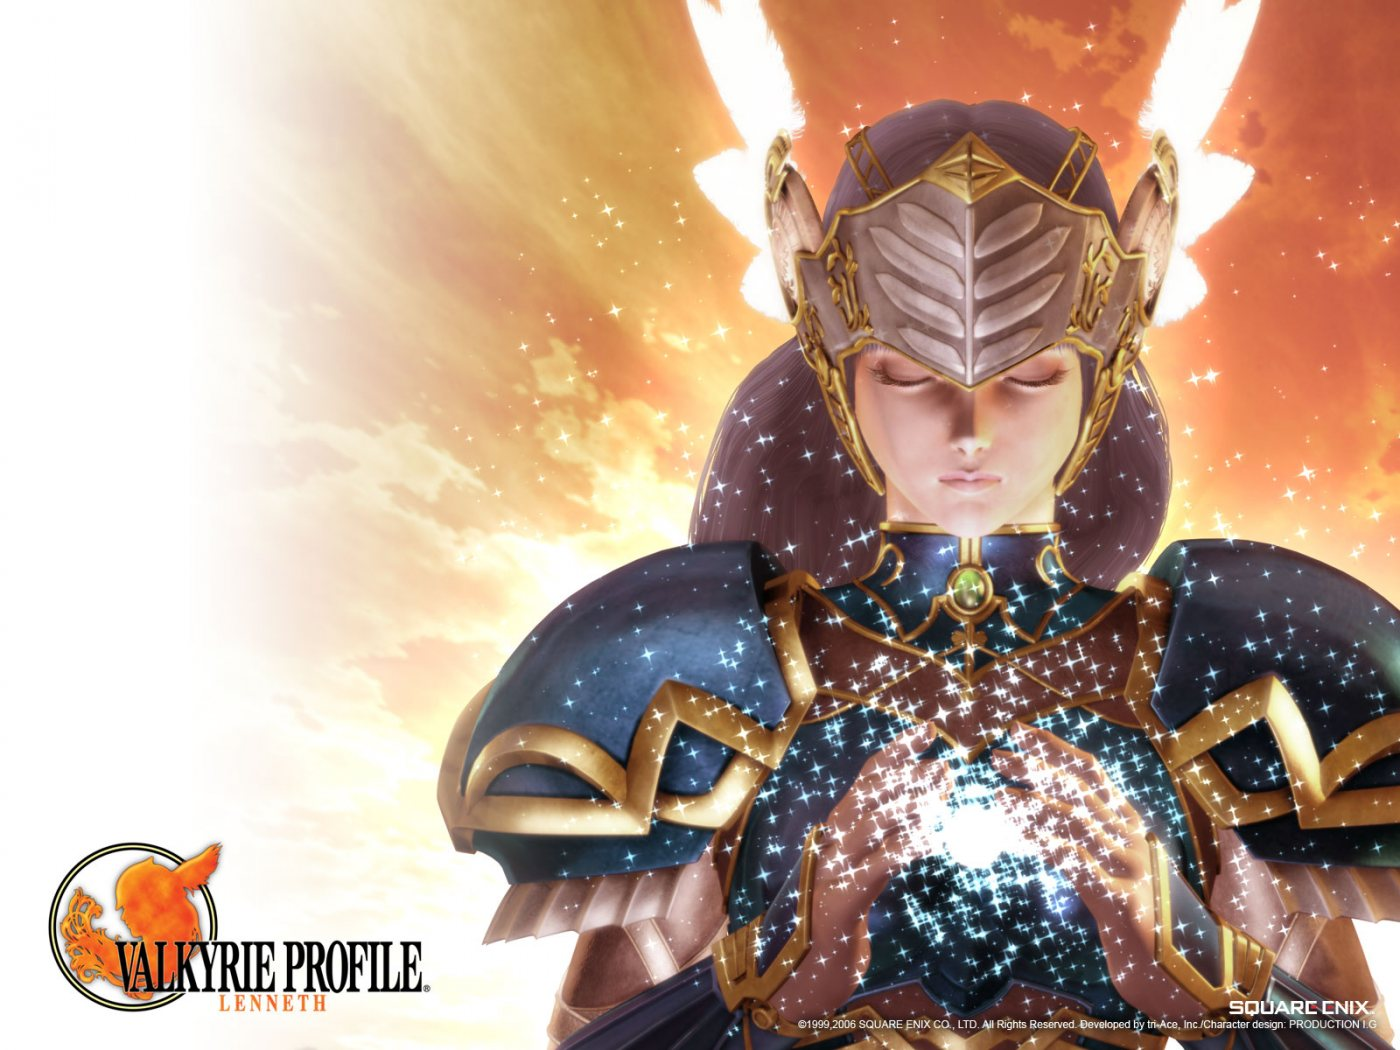 Valkyrie Profile Wallpaper And Background Image  1400X1050  Id123610-6563